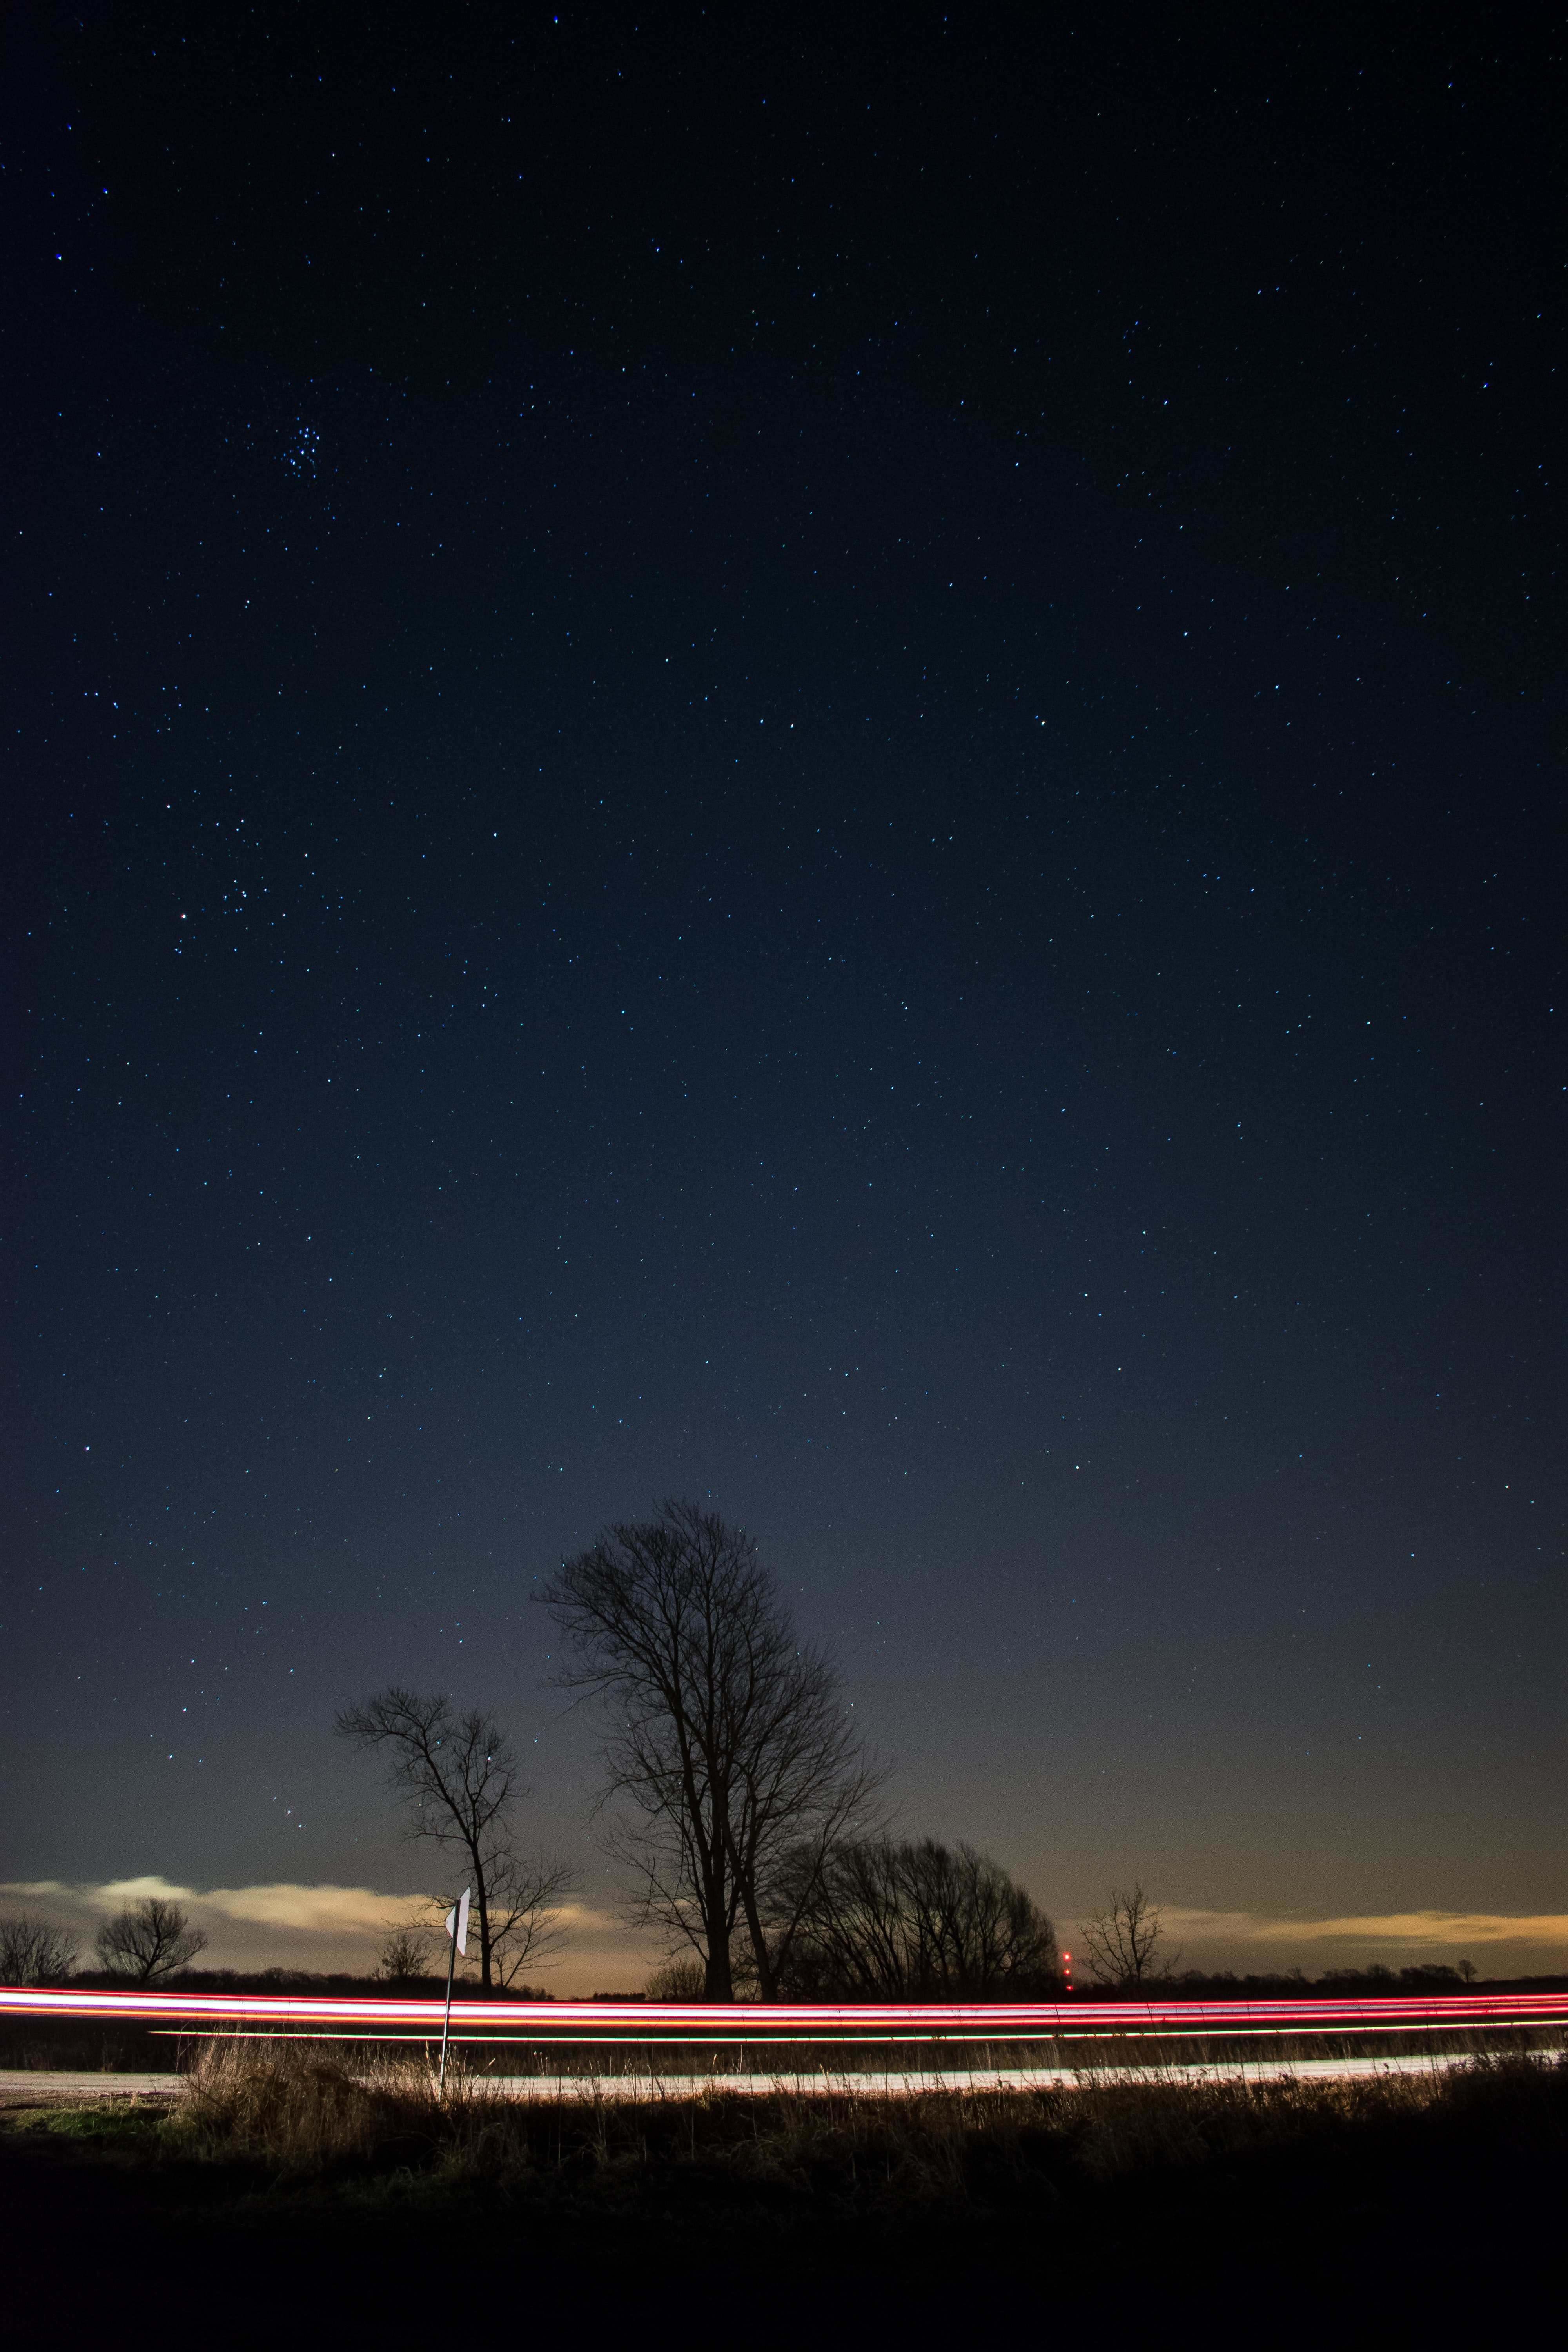 A light rail image with a dark night sky and tree silhouettes in the horizon